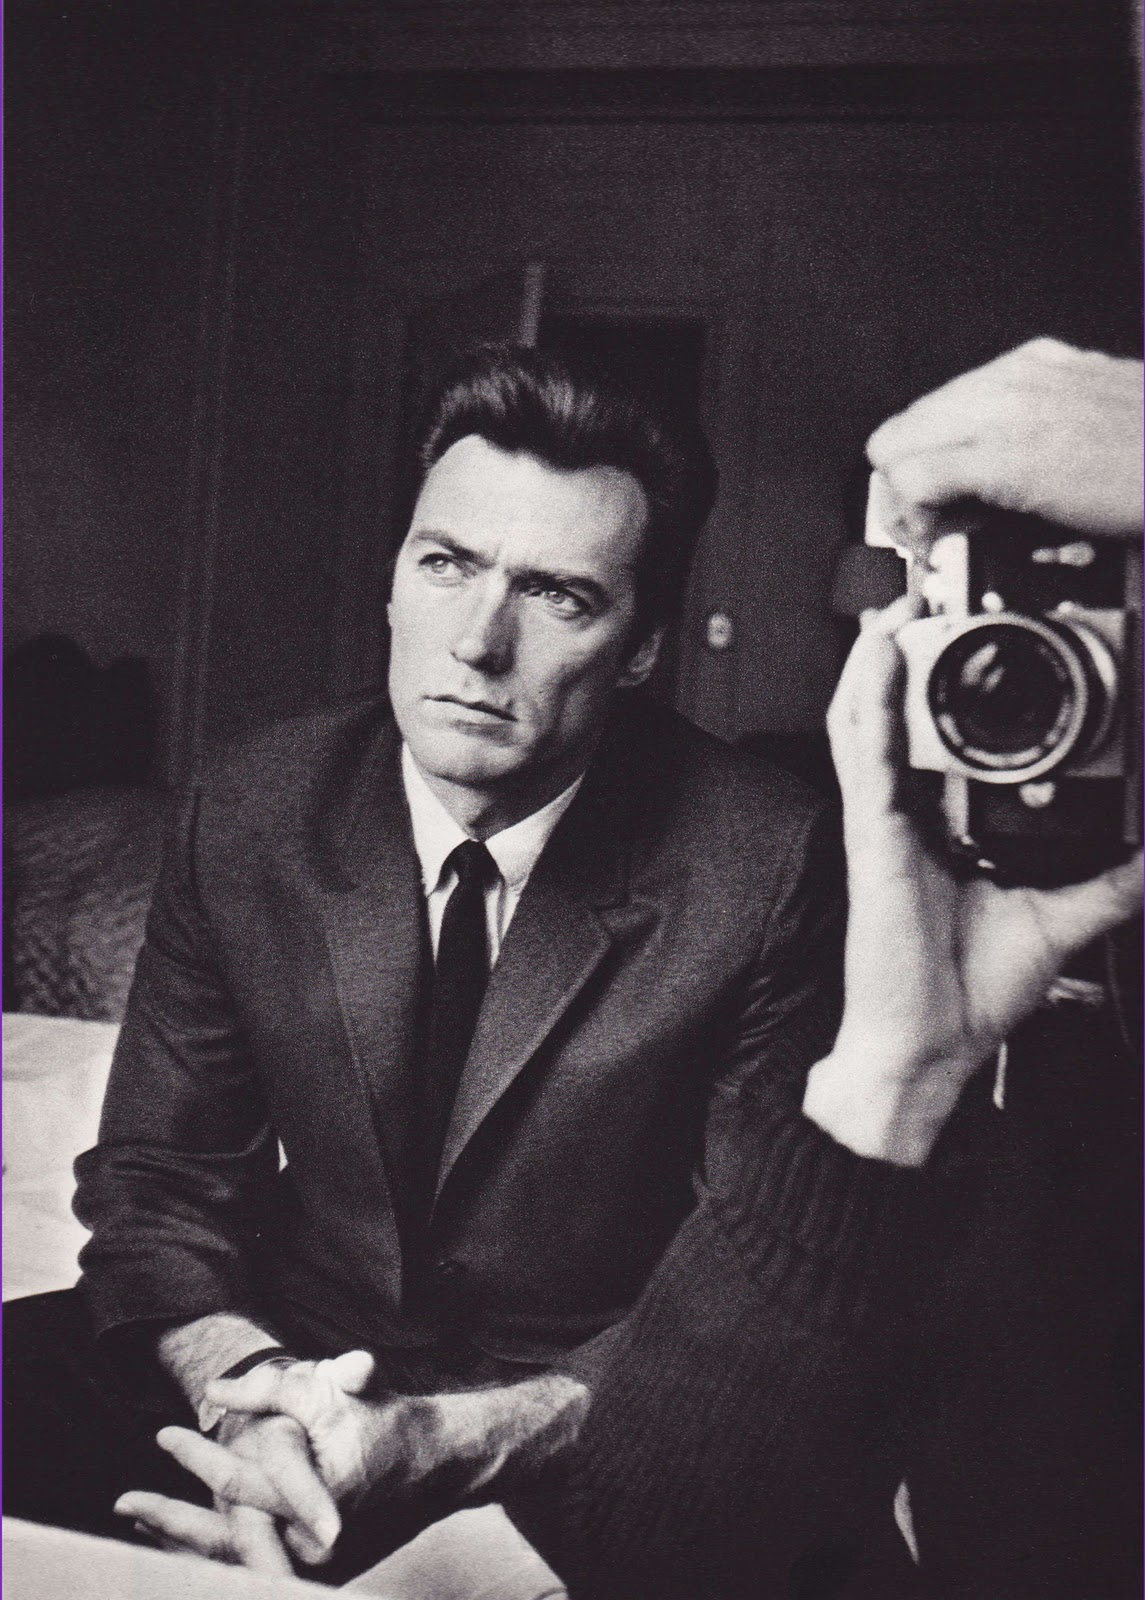 Clint Eastwood by Duane Michals.jpg